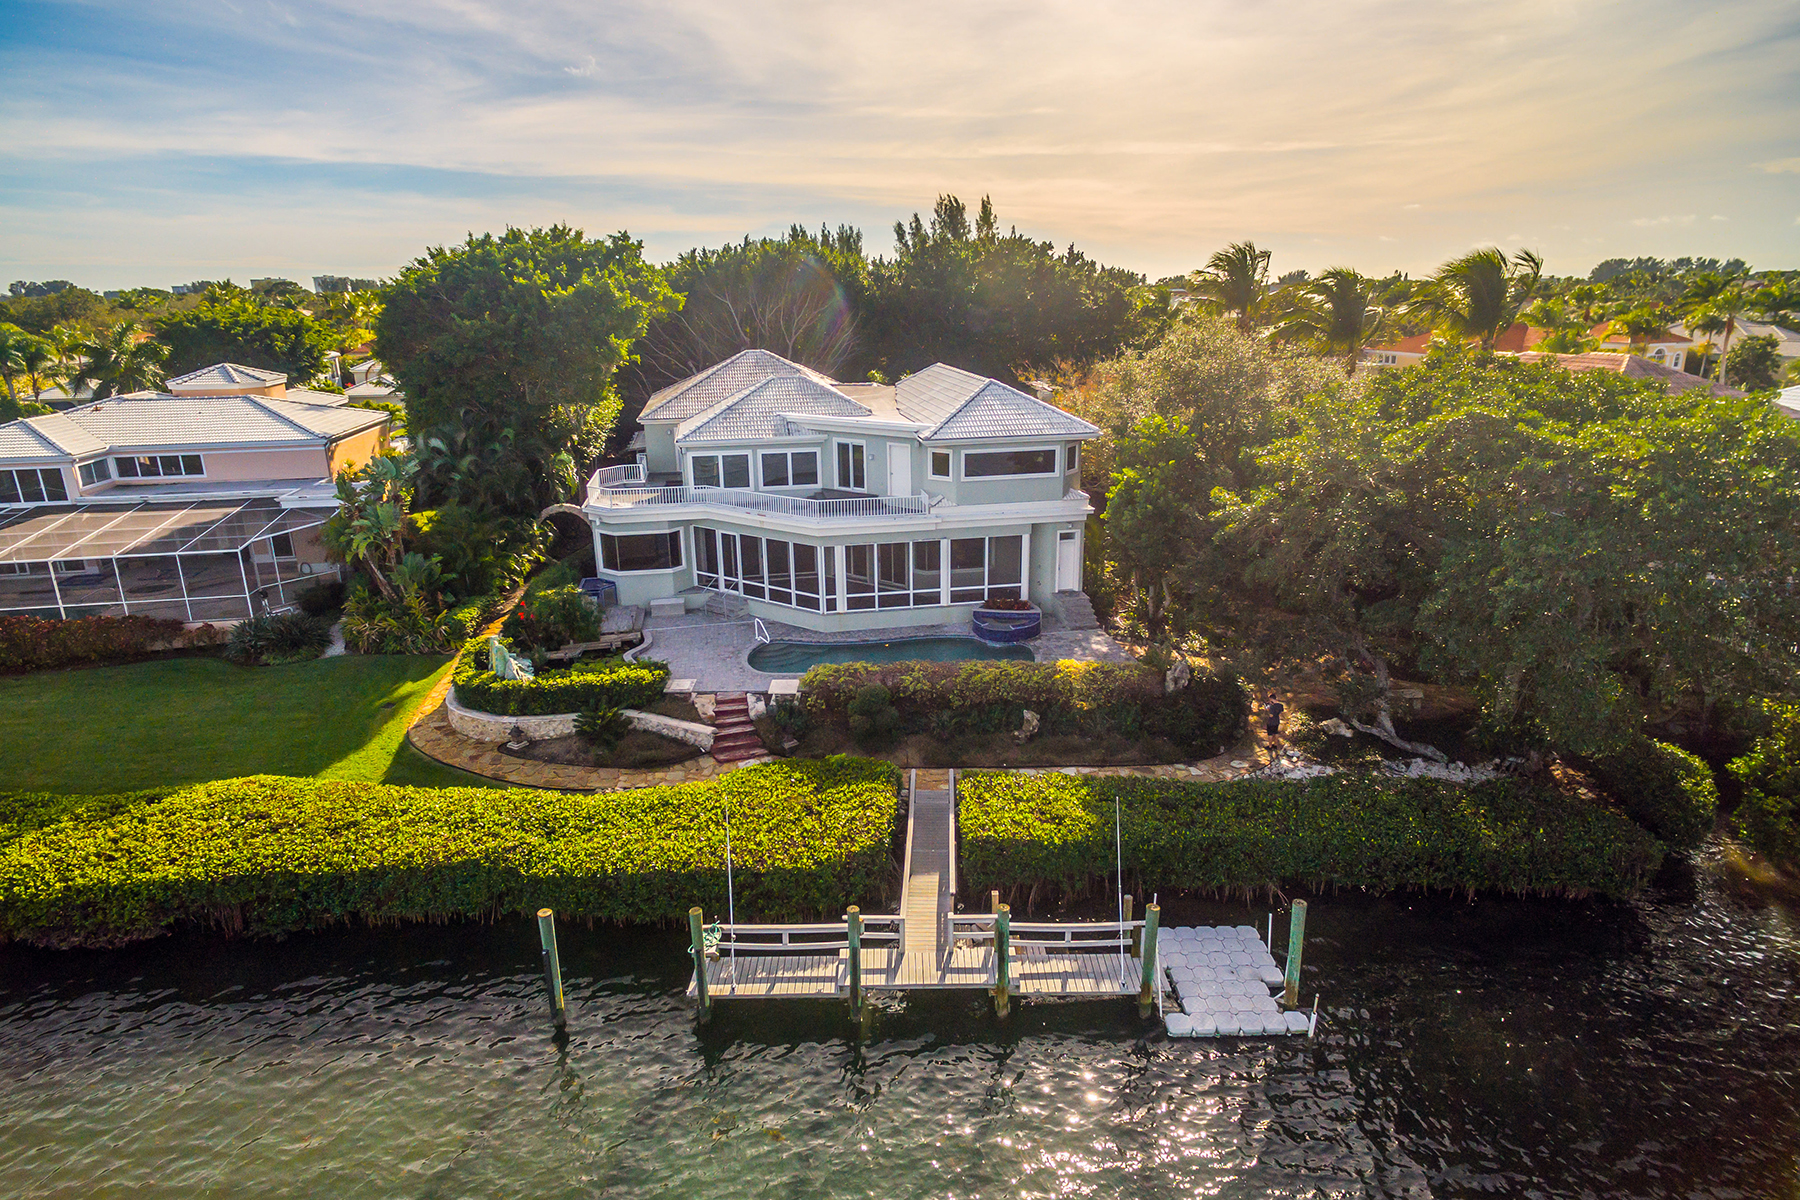 Single Family Home for Sale at COREYS LANDING 3590 Mistletoe Ln Longboat Key, Florida, 34228 United States